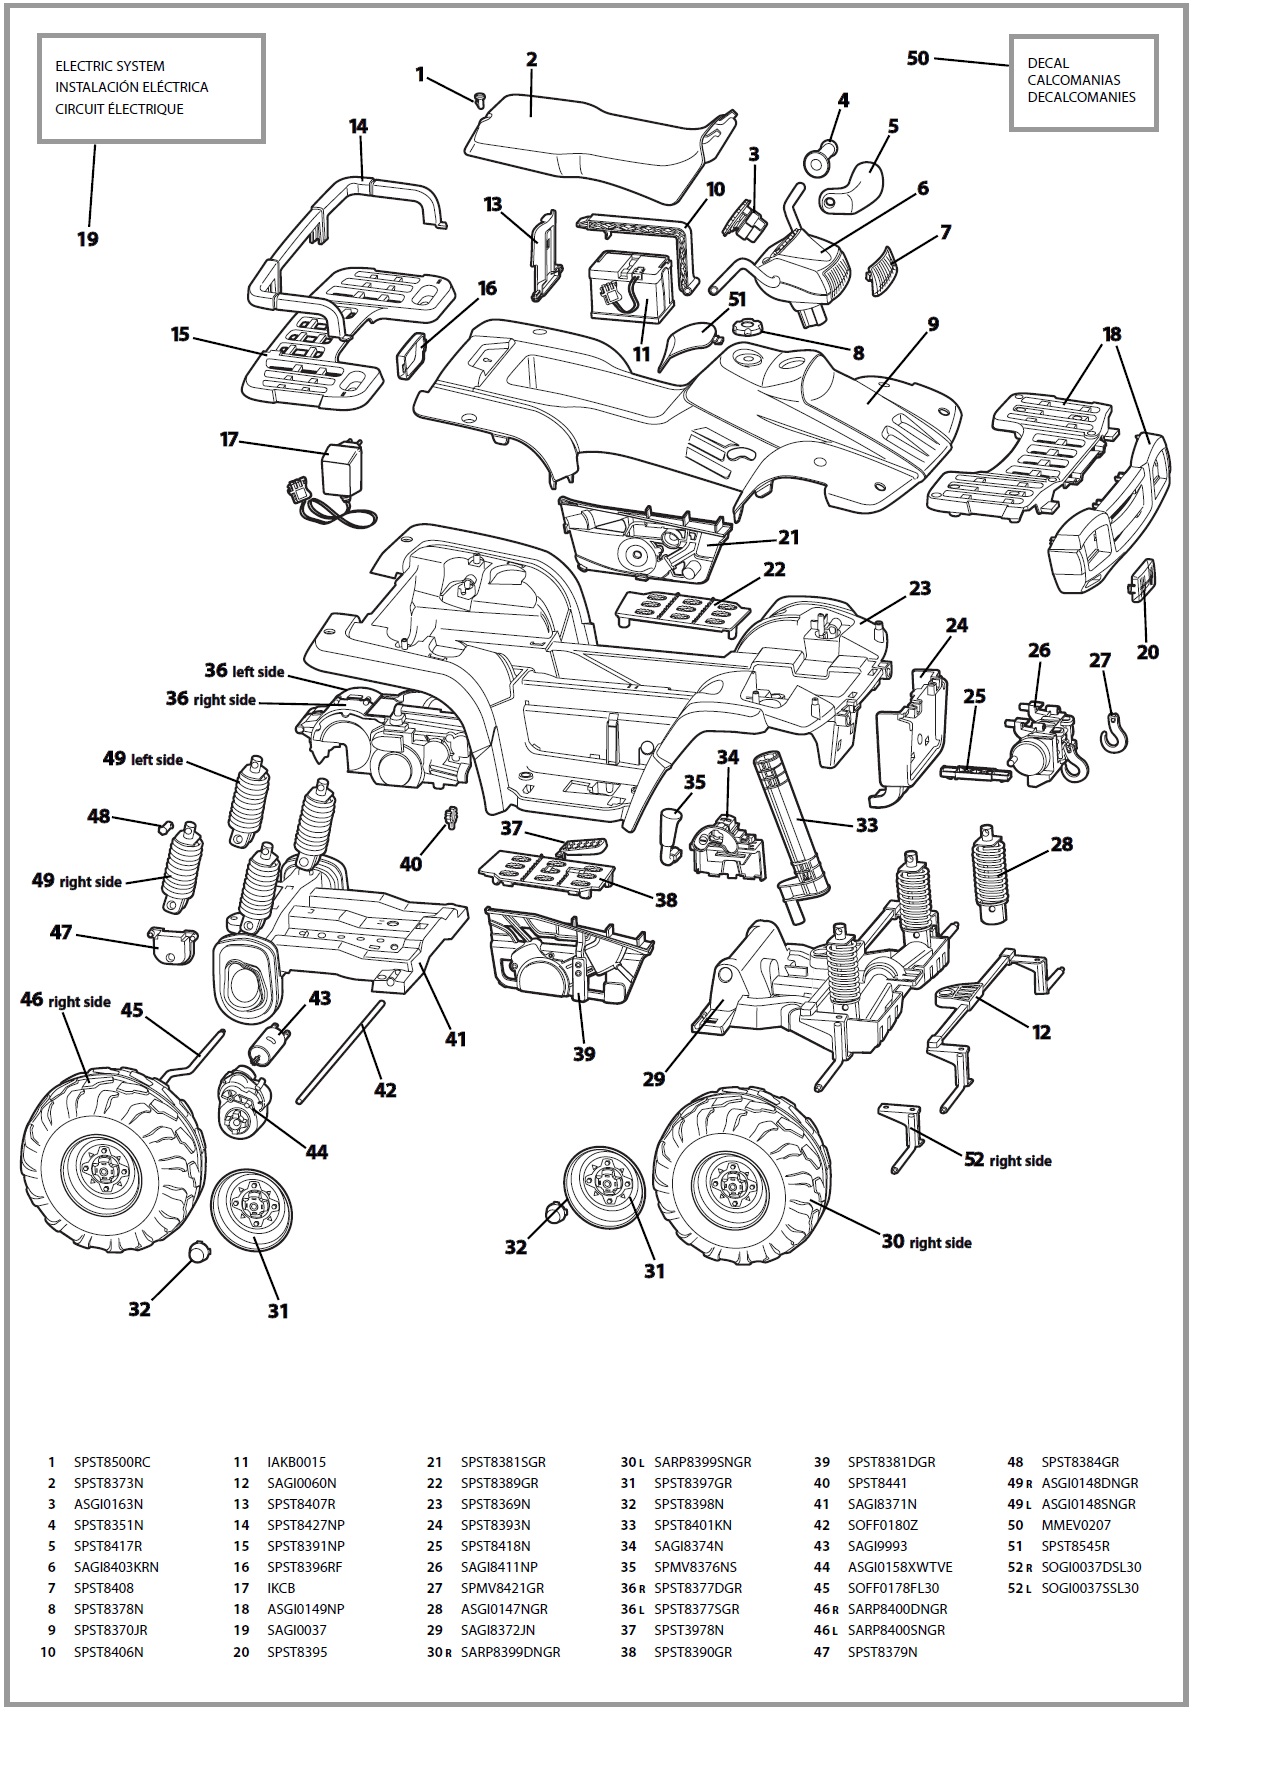 hight resolution of polaris sportsman 700 engine diagram wiring diagrams show polaris engine diagram wiring diagram 2004 polaris sportsman